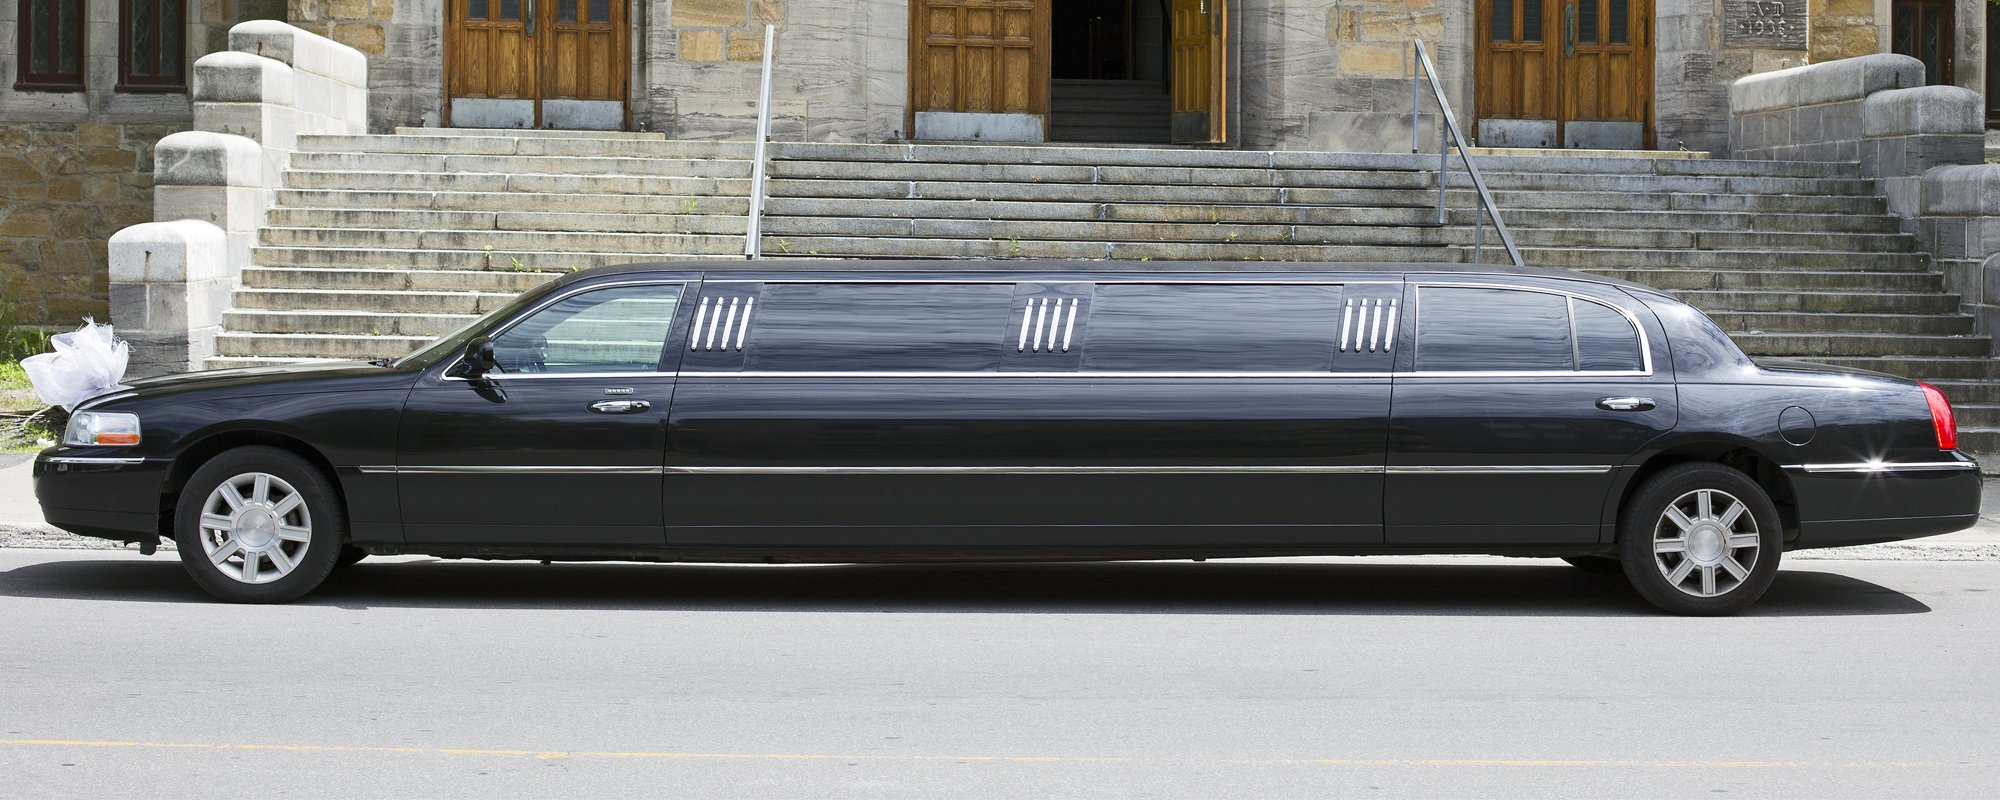 Black Limo parked in fronty of the stairs